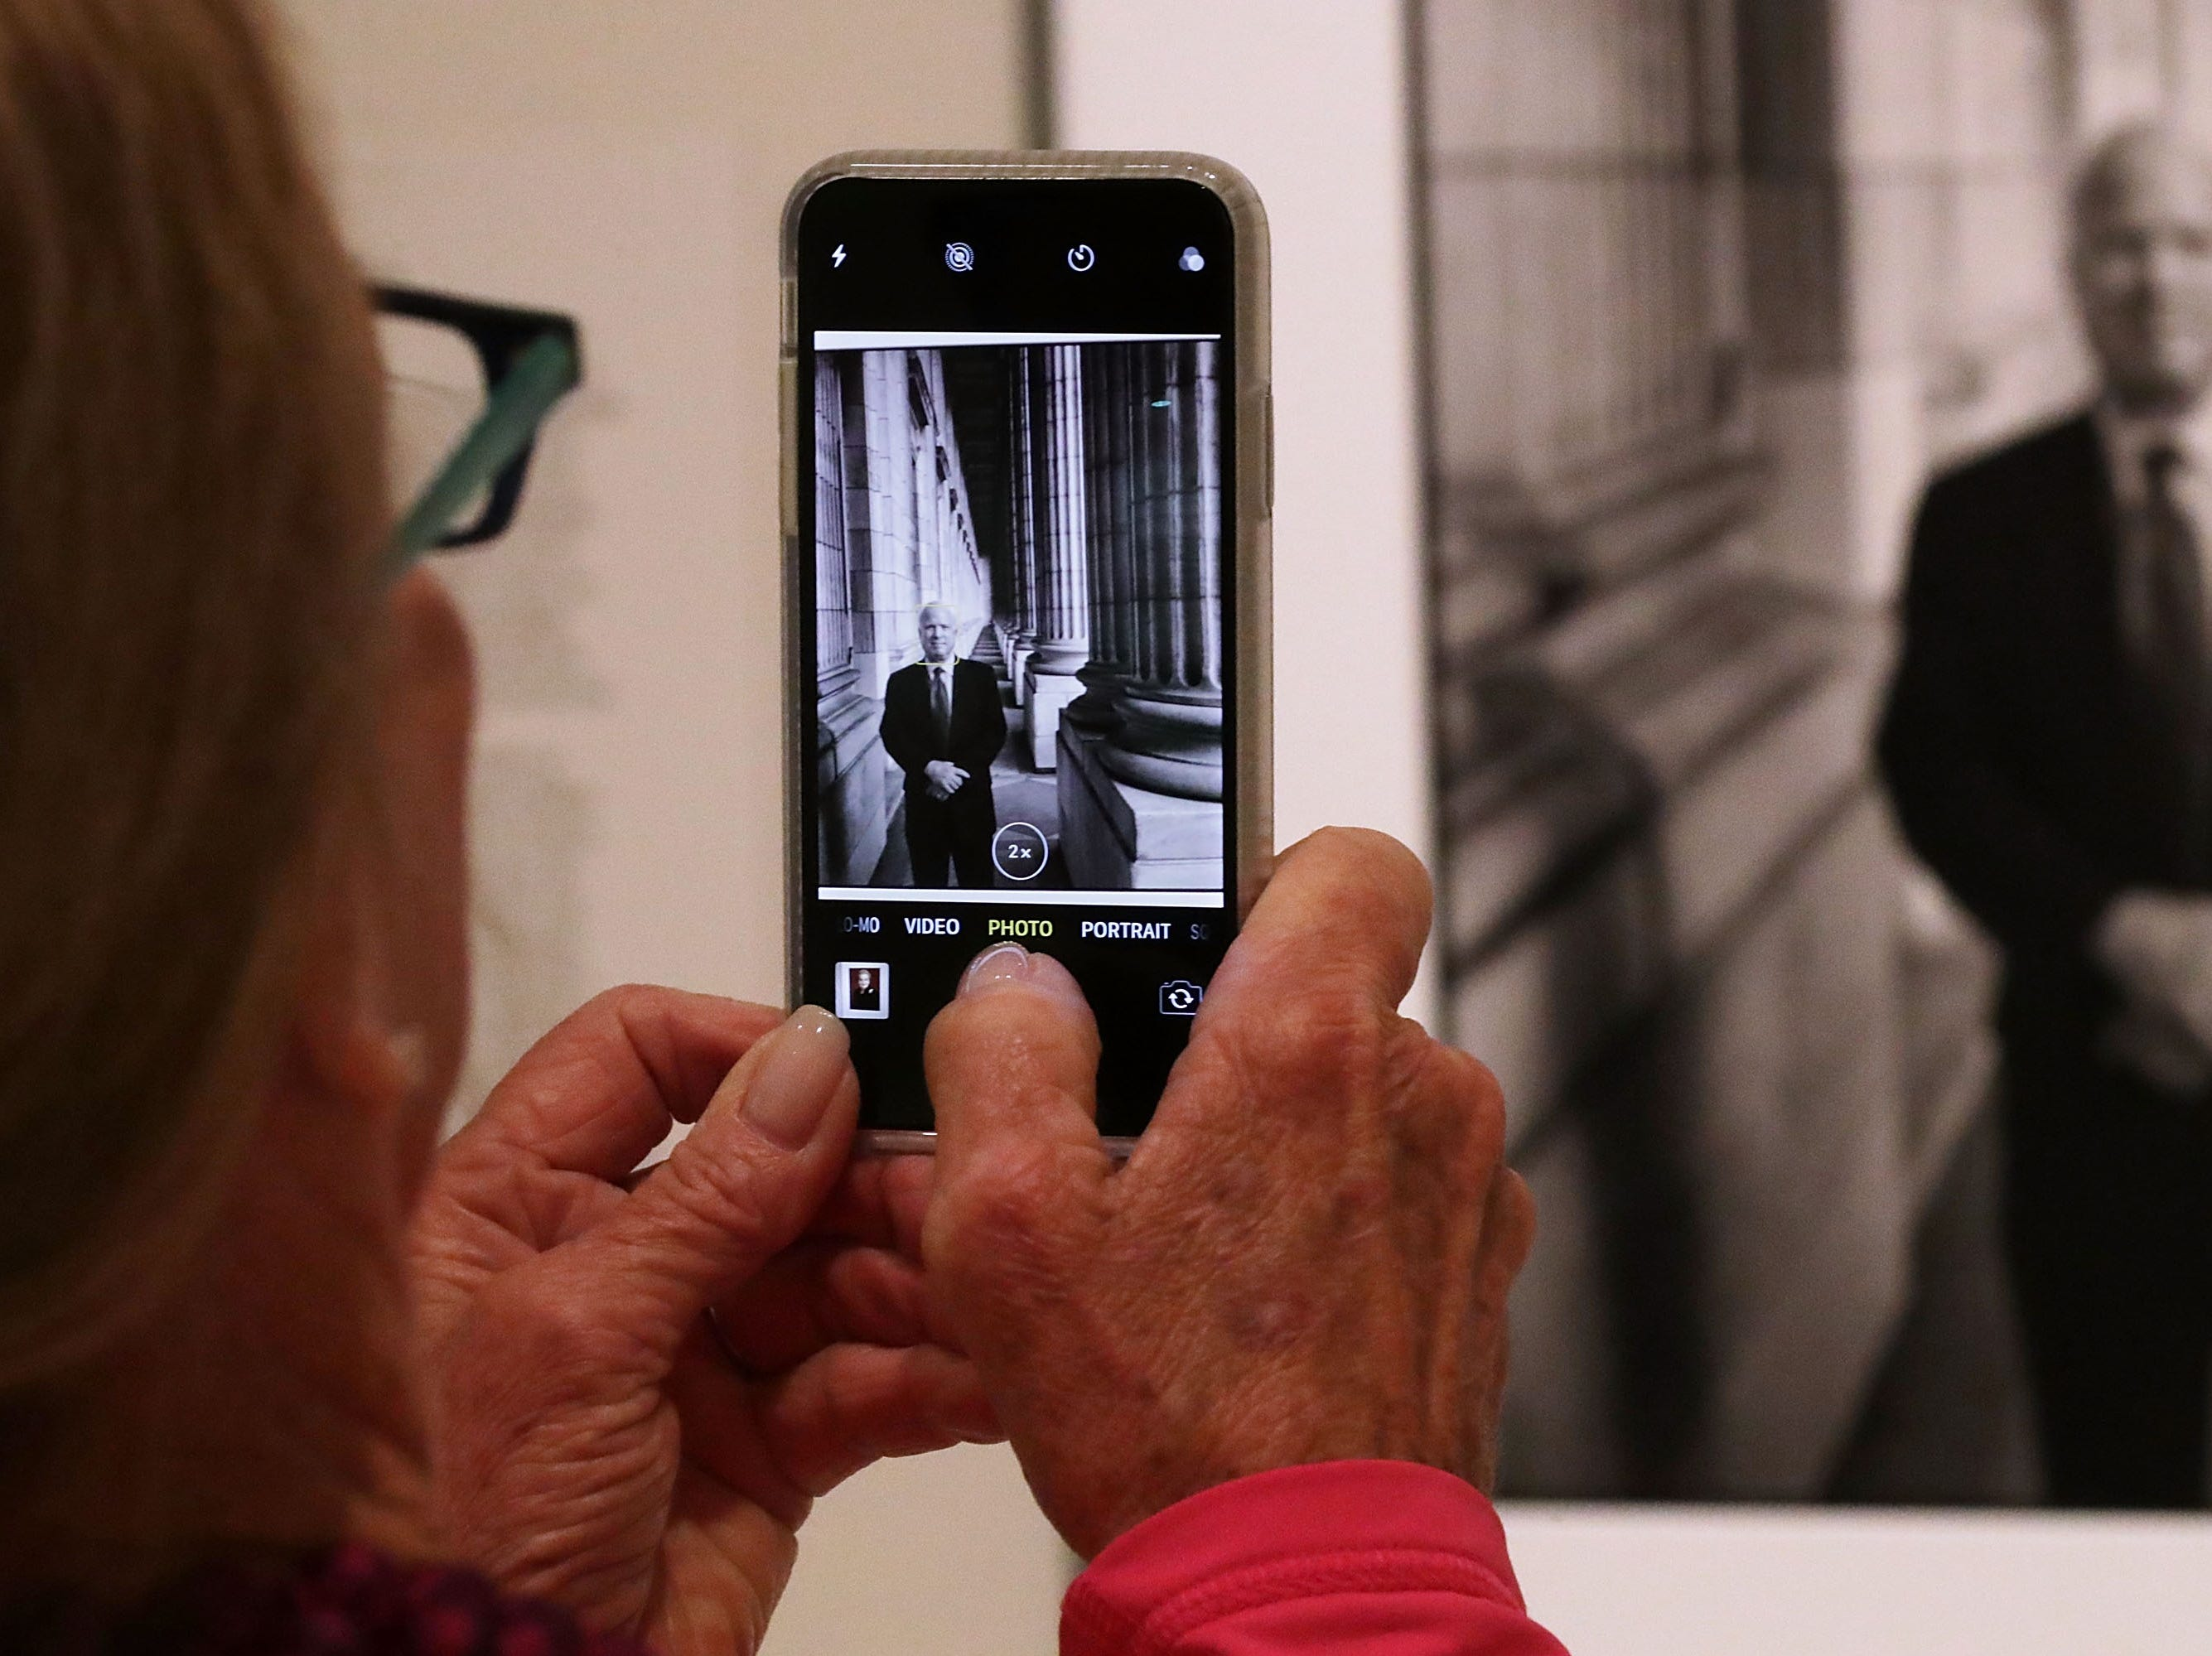 A visitor makes a photograph of an image of Sen. John McCain on display at the Smithsonian National Portrait Gallery Aug. 27, 2018 in Washington, DC.